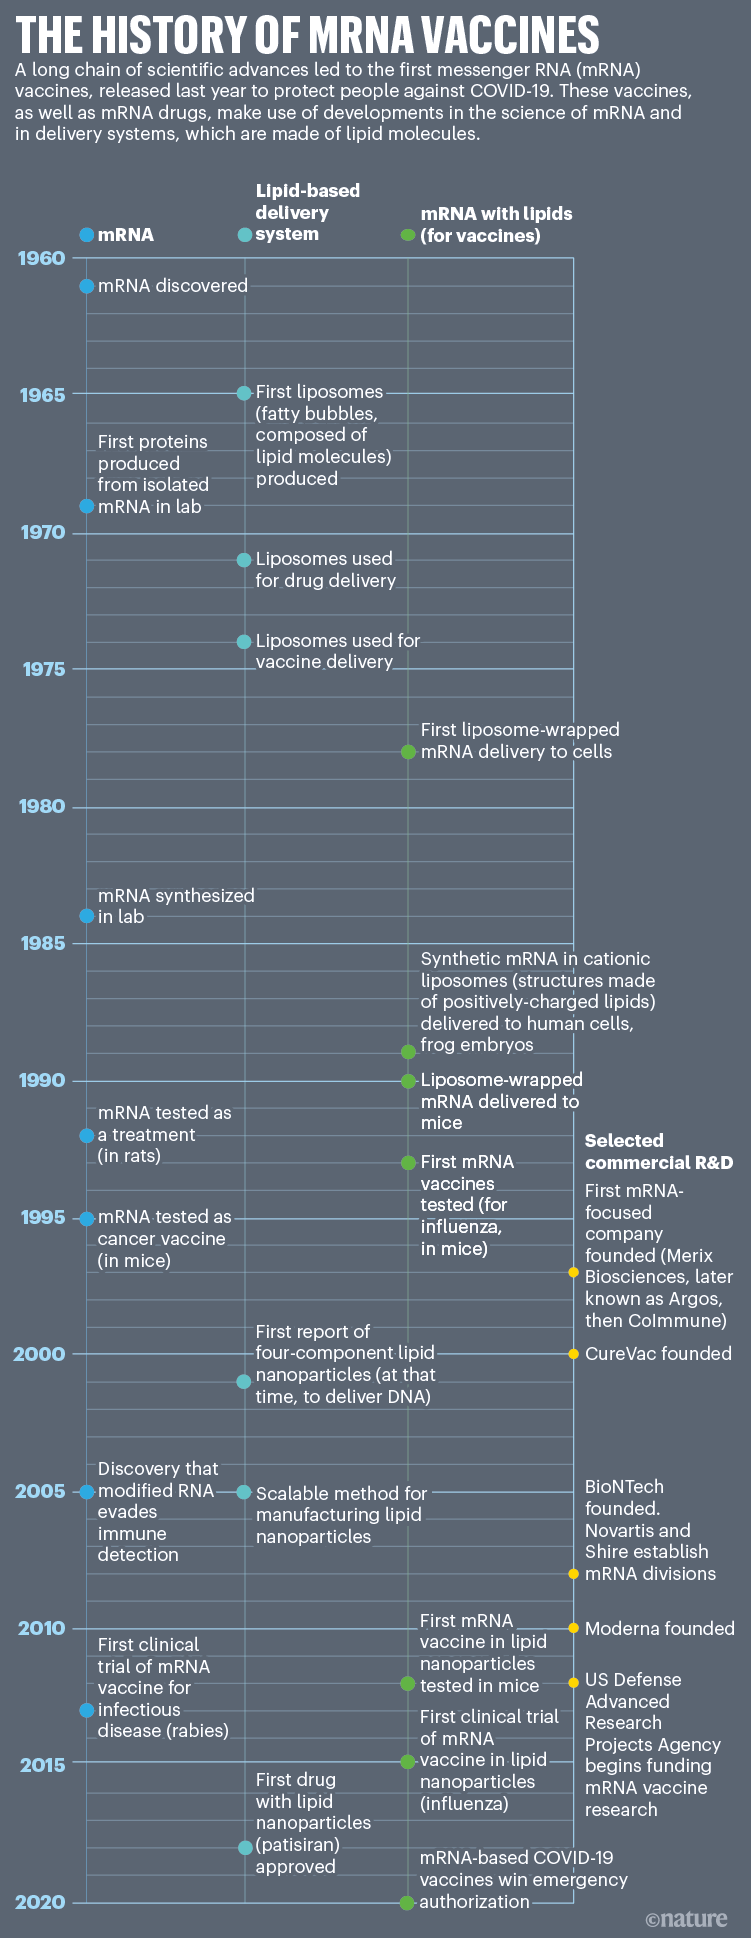 The history of mRNA vaccines: A timeline that shows the key scientific innovations in the development of mRNA vaccines.